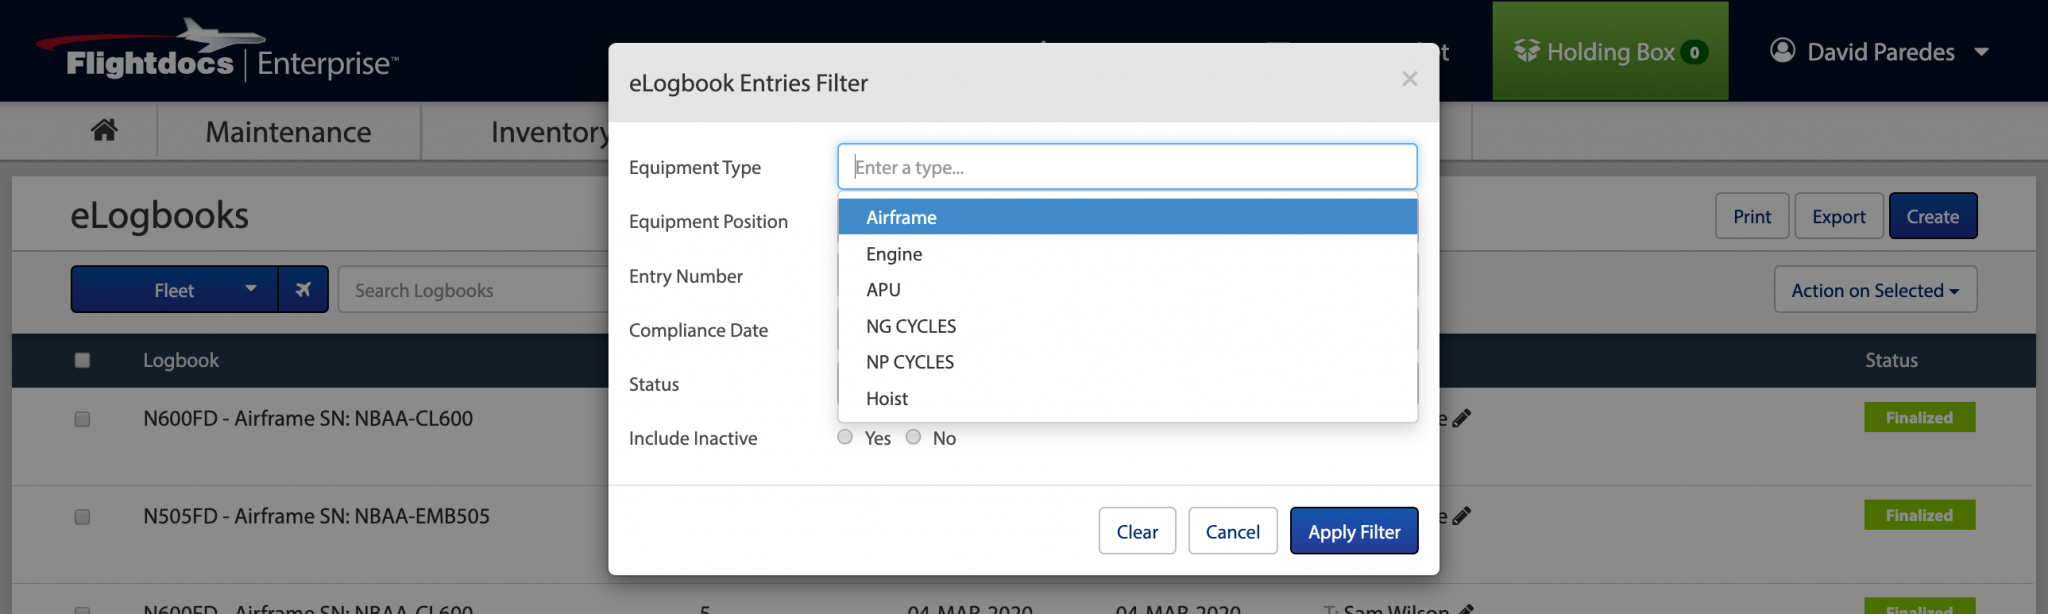 Flightdocs filter options